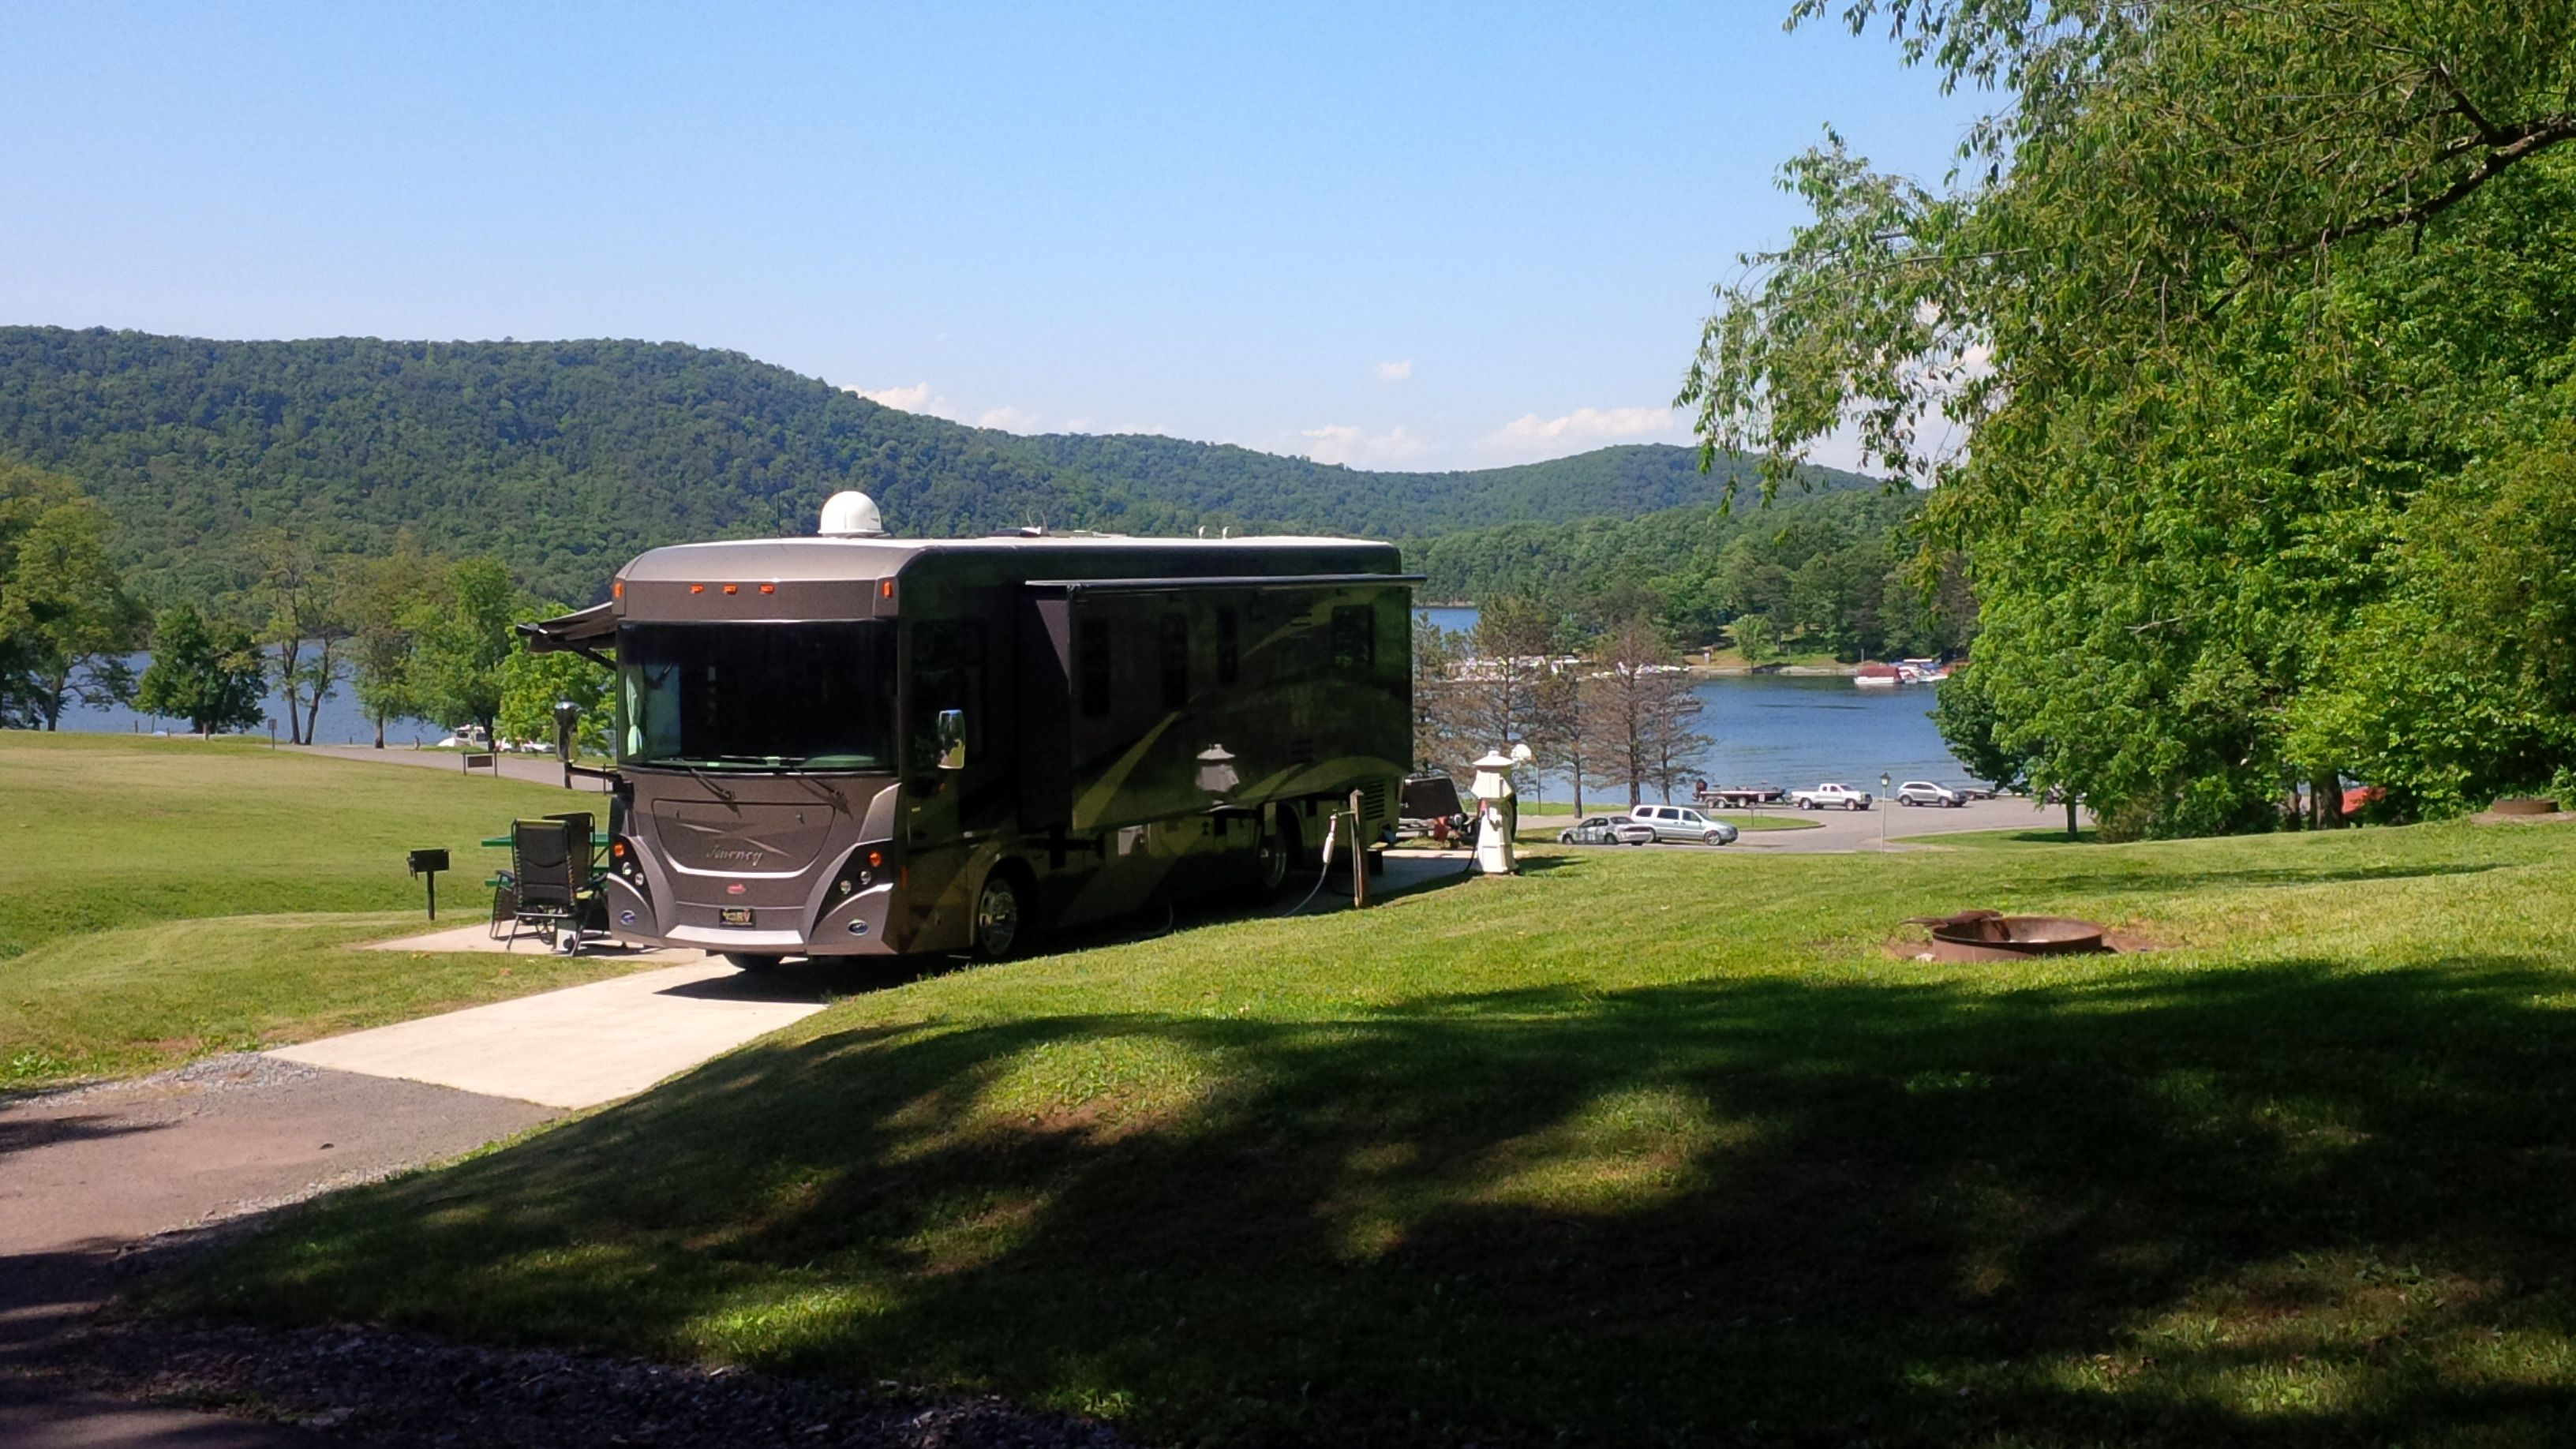 Rv Sites And Camping In Central Pennsylvania Lake Raystown Resort Lake Camping State Park Camping Outdoor Destinations